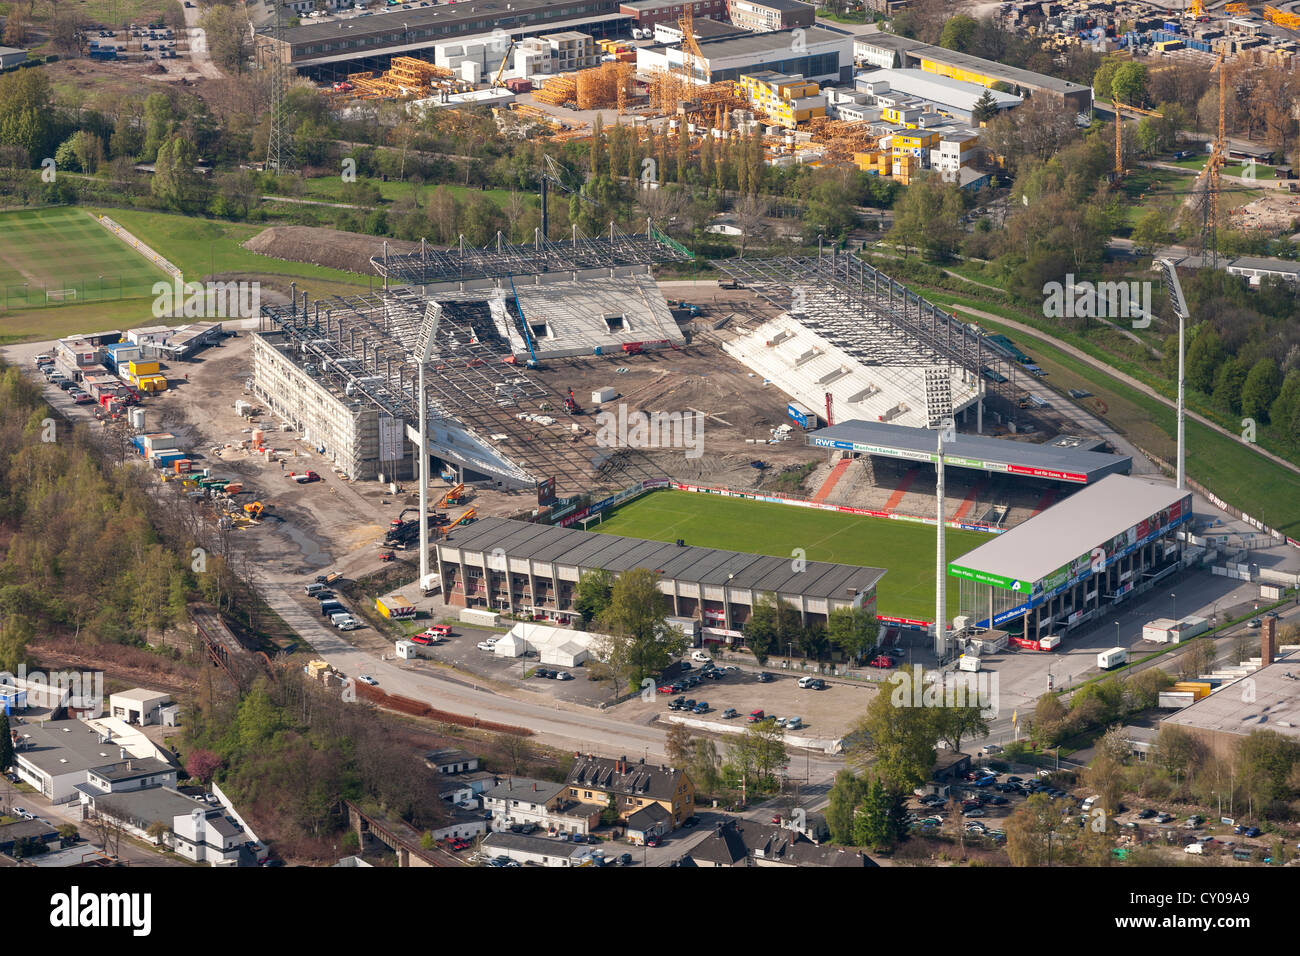 Aerial view, Rot-Weiss Essen stadium, Georg-Melches stadium, construction of the stadium, Essen, Ruhr area - Stock Image